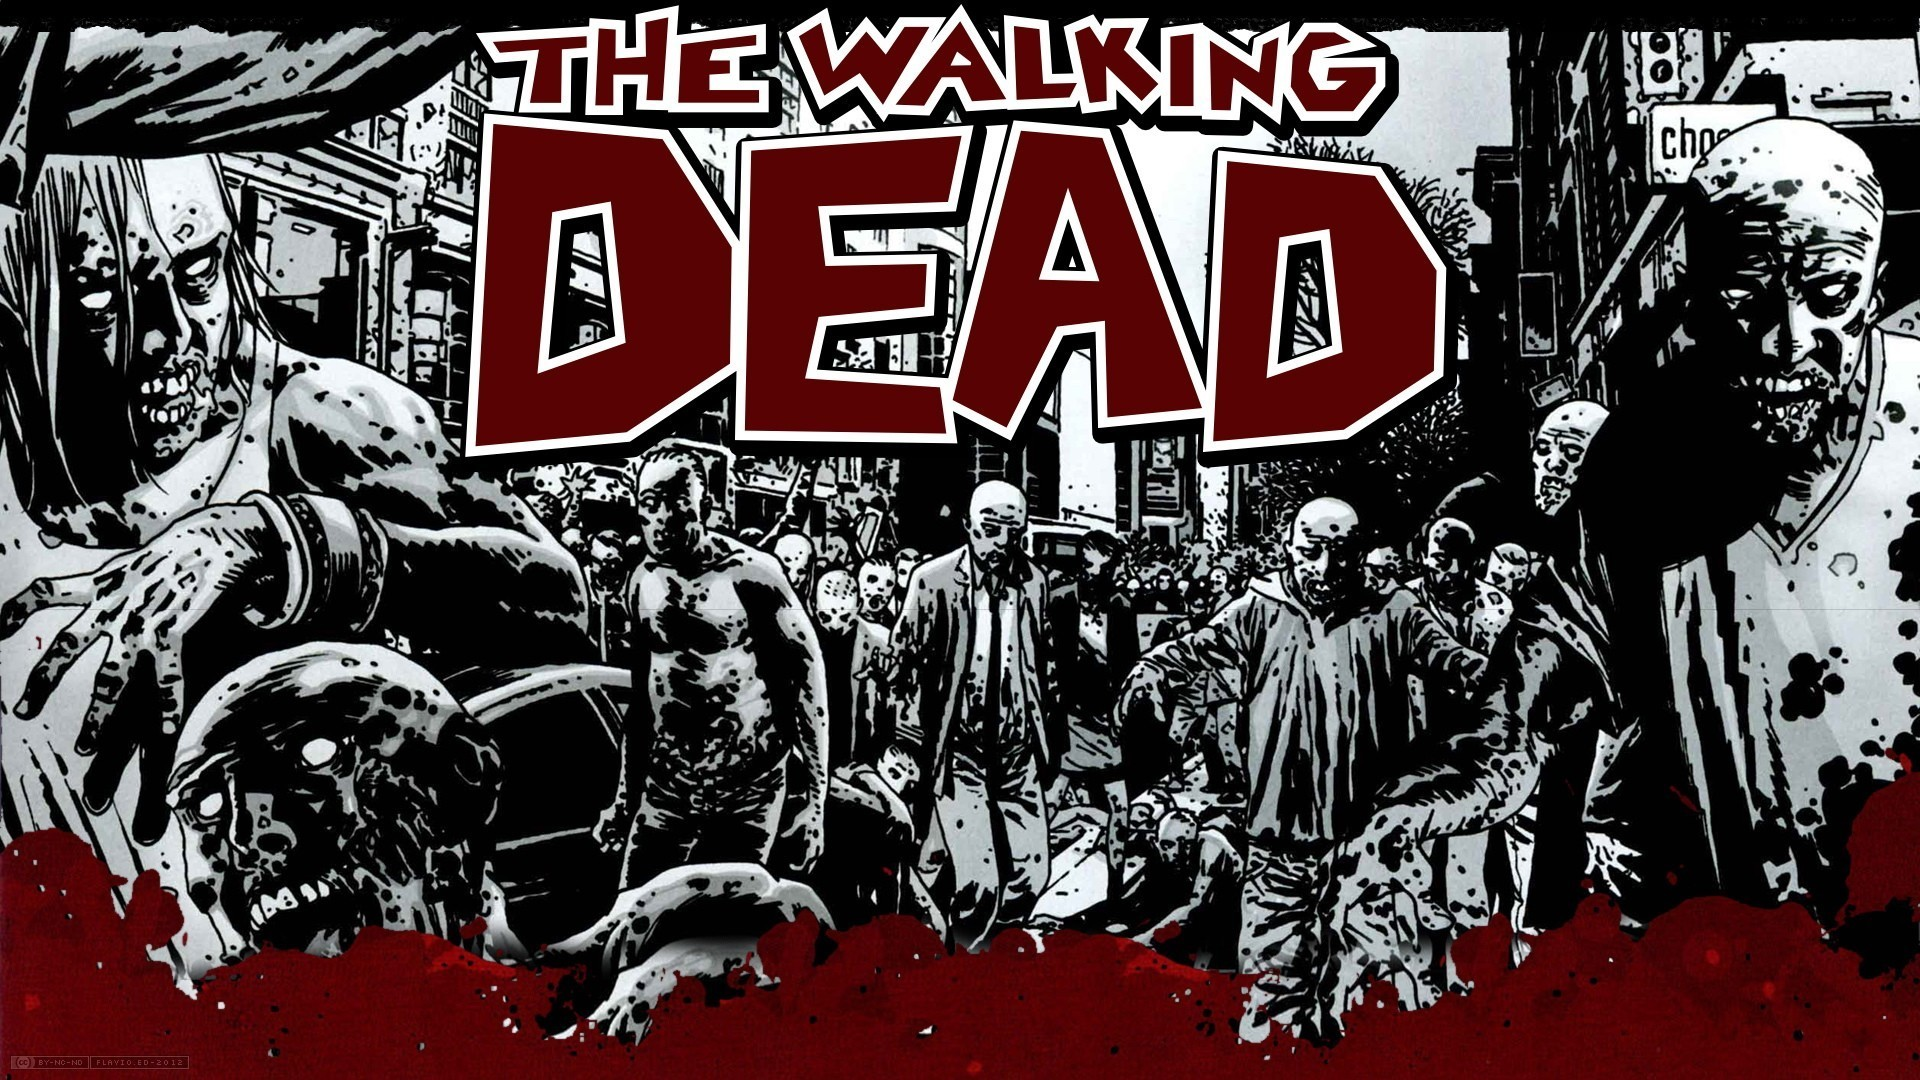 The walking dead iphone wallpaper 67 images 1920x1080 the walking dead season 4 wallpaper wallpaper download voltagebd Images